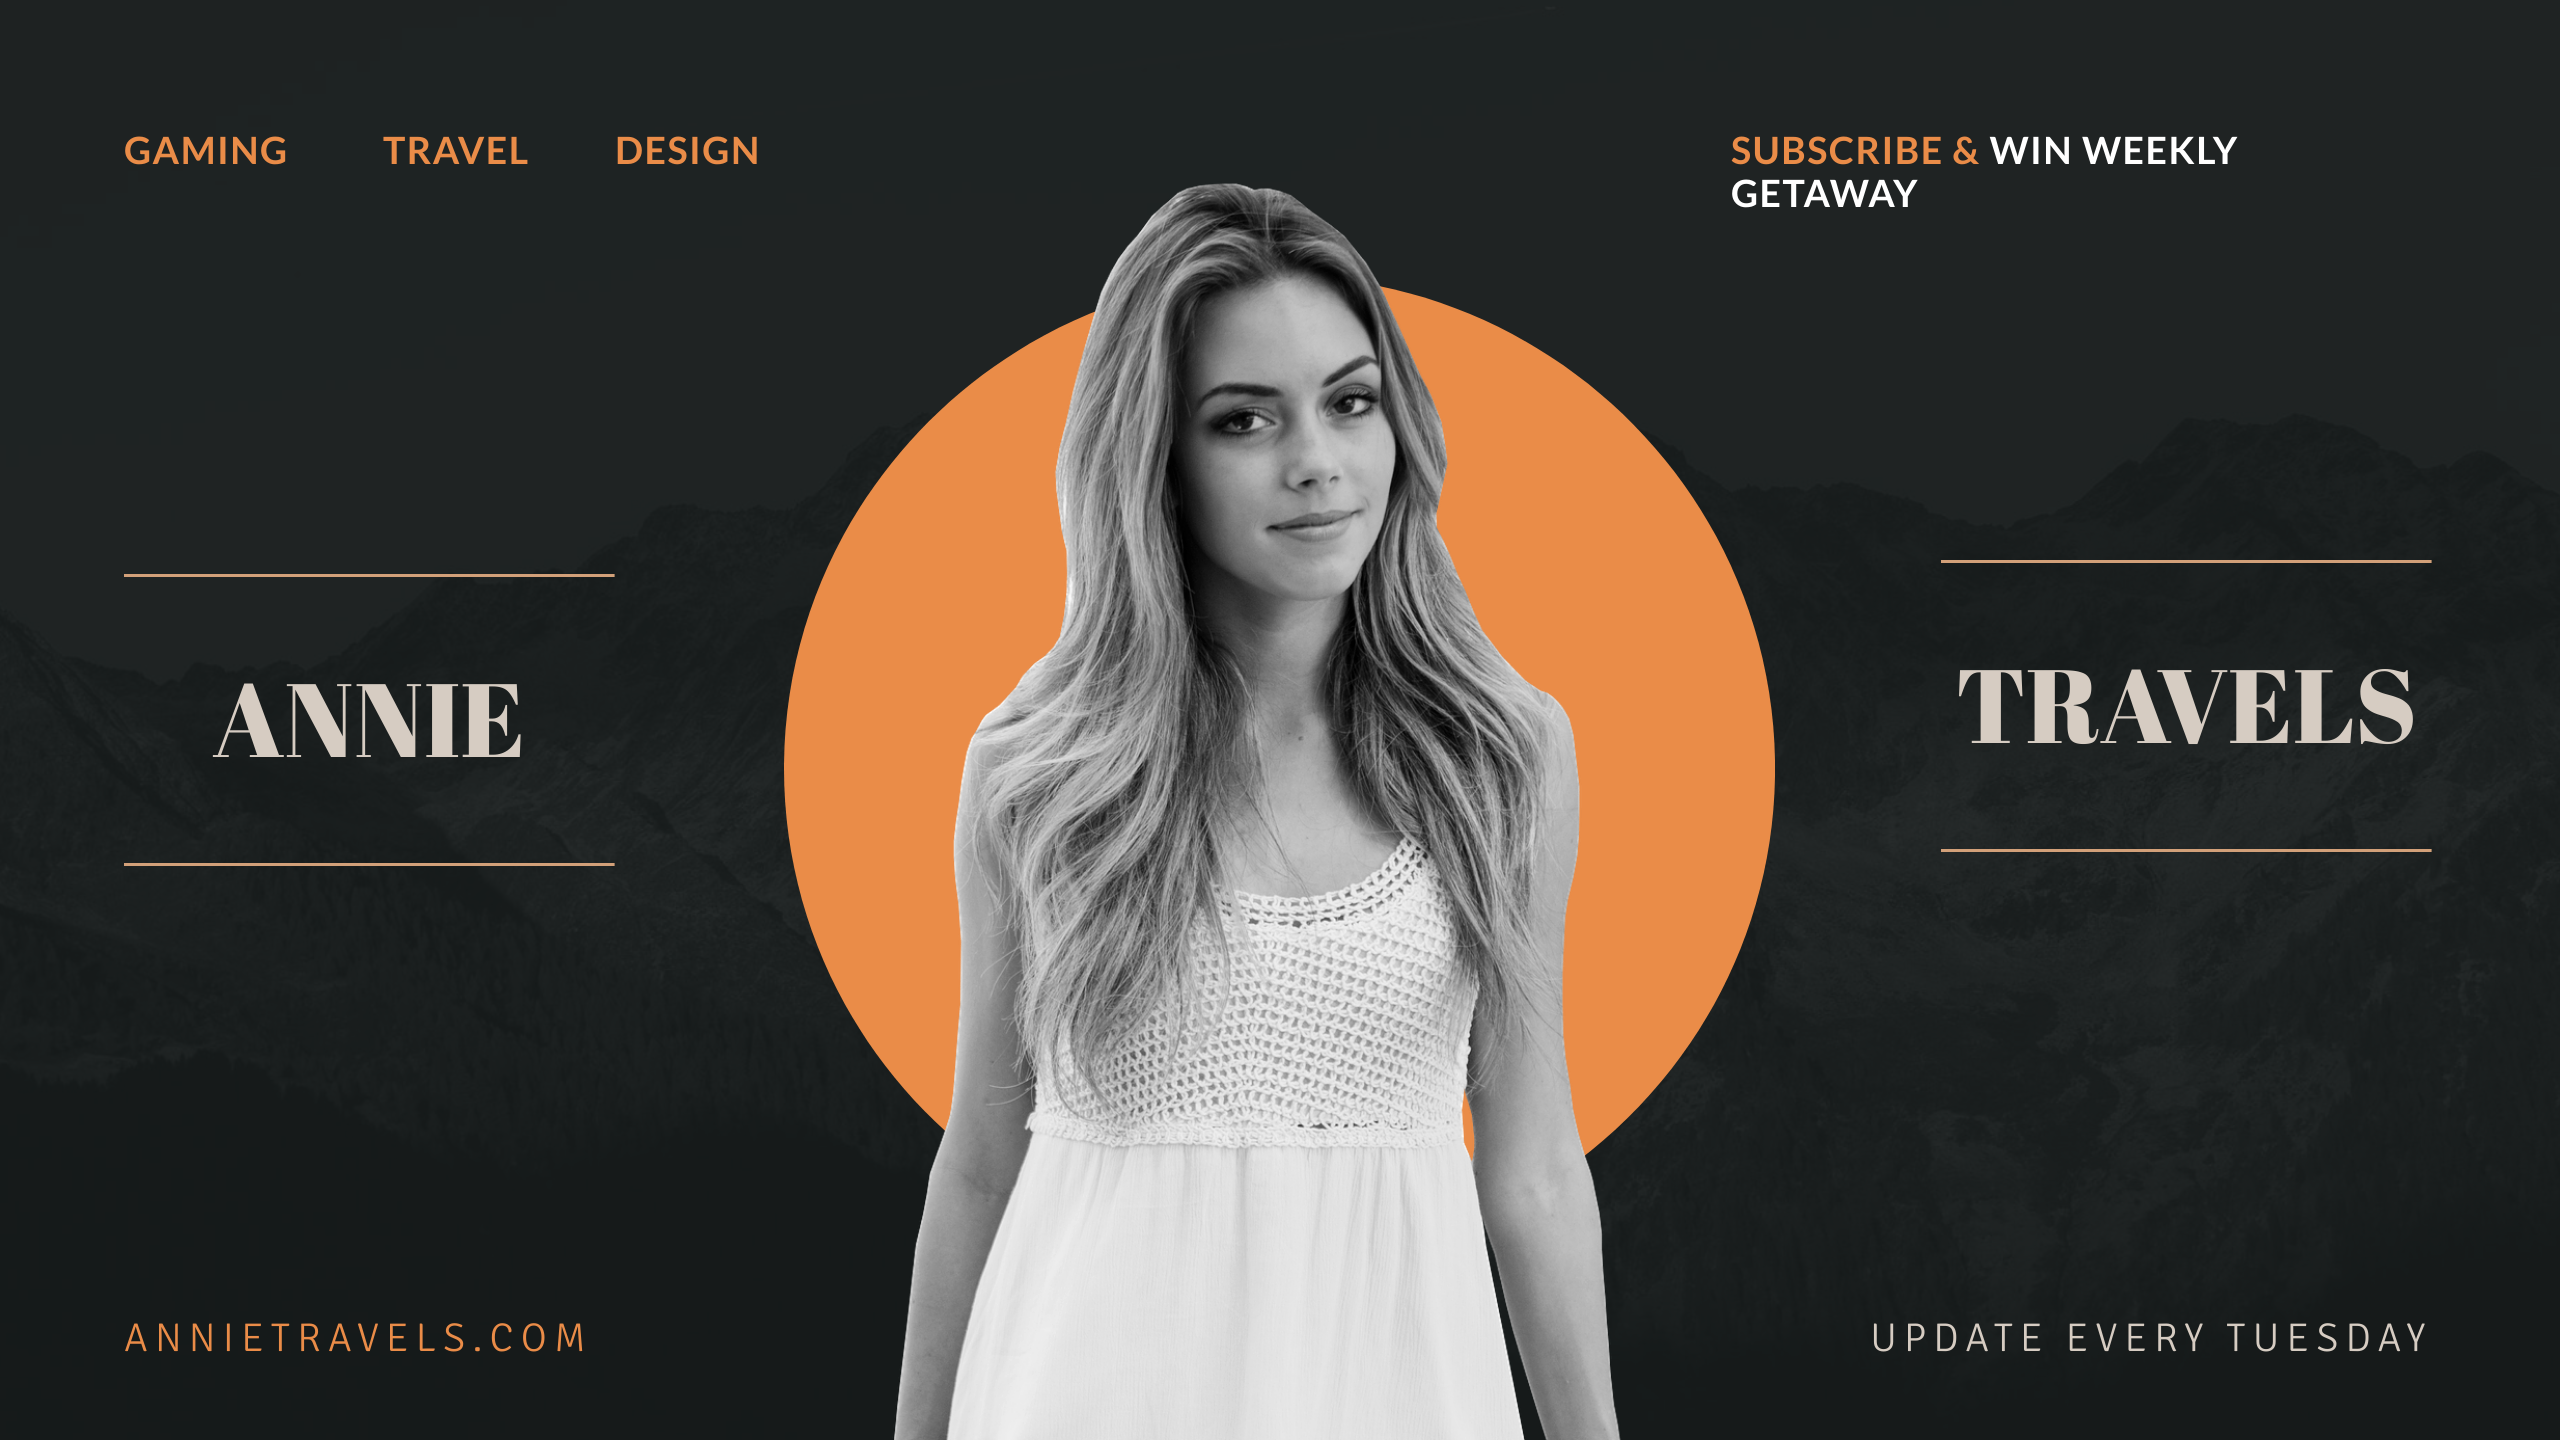 YouTube banner template #2 - graphic design tips for non-designers